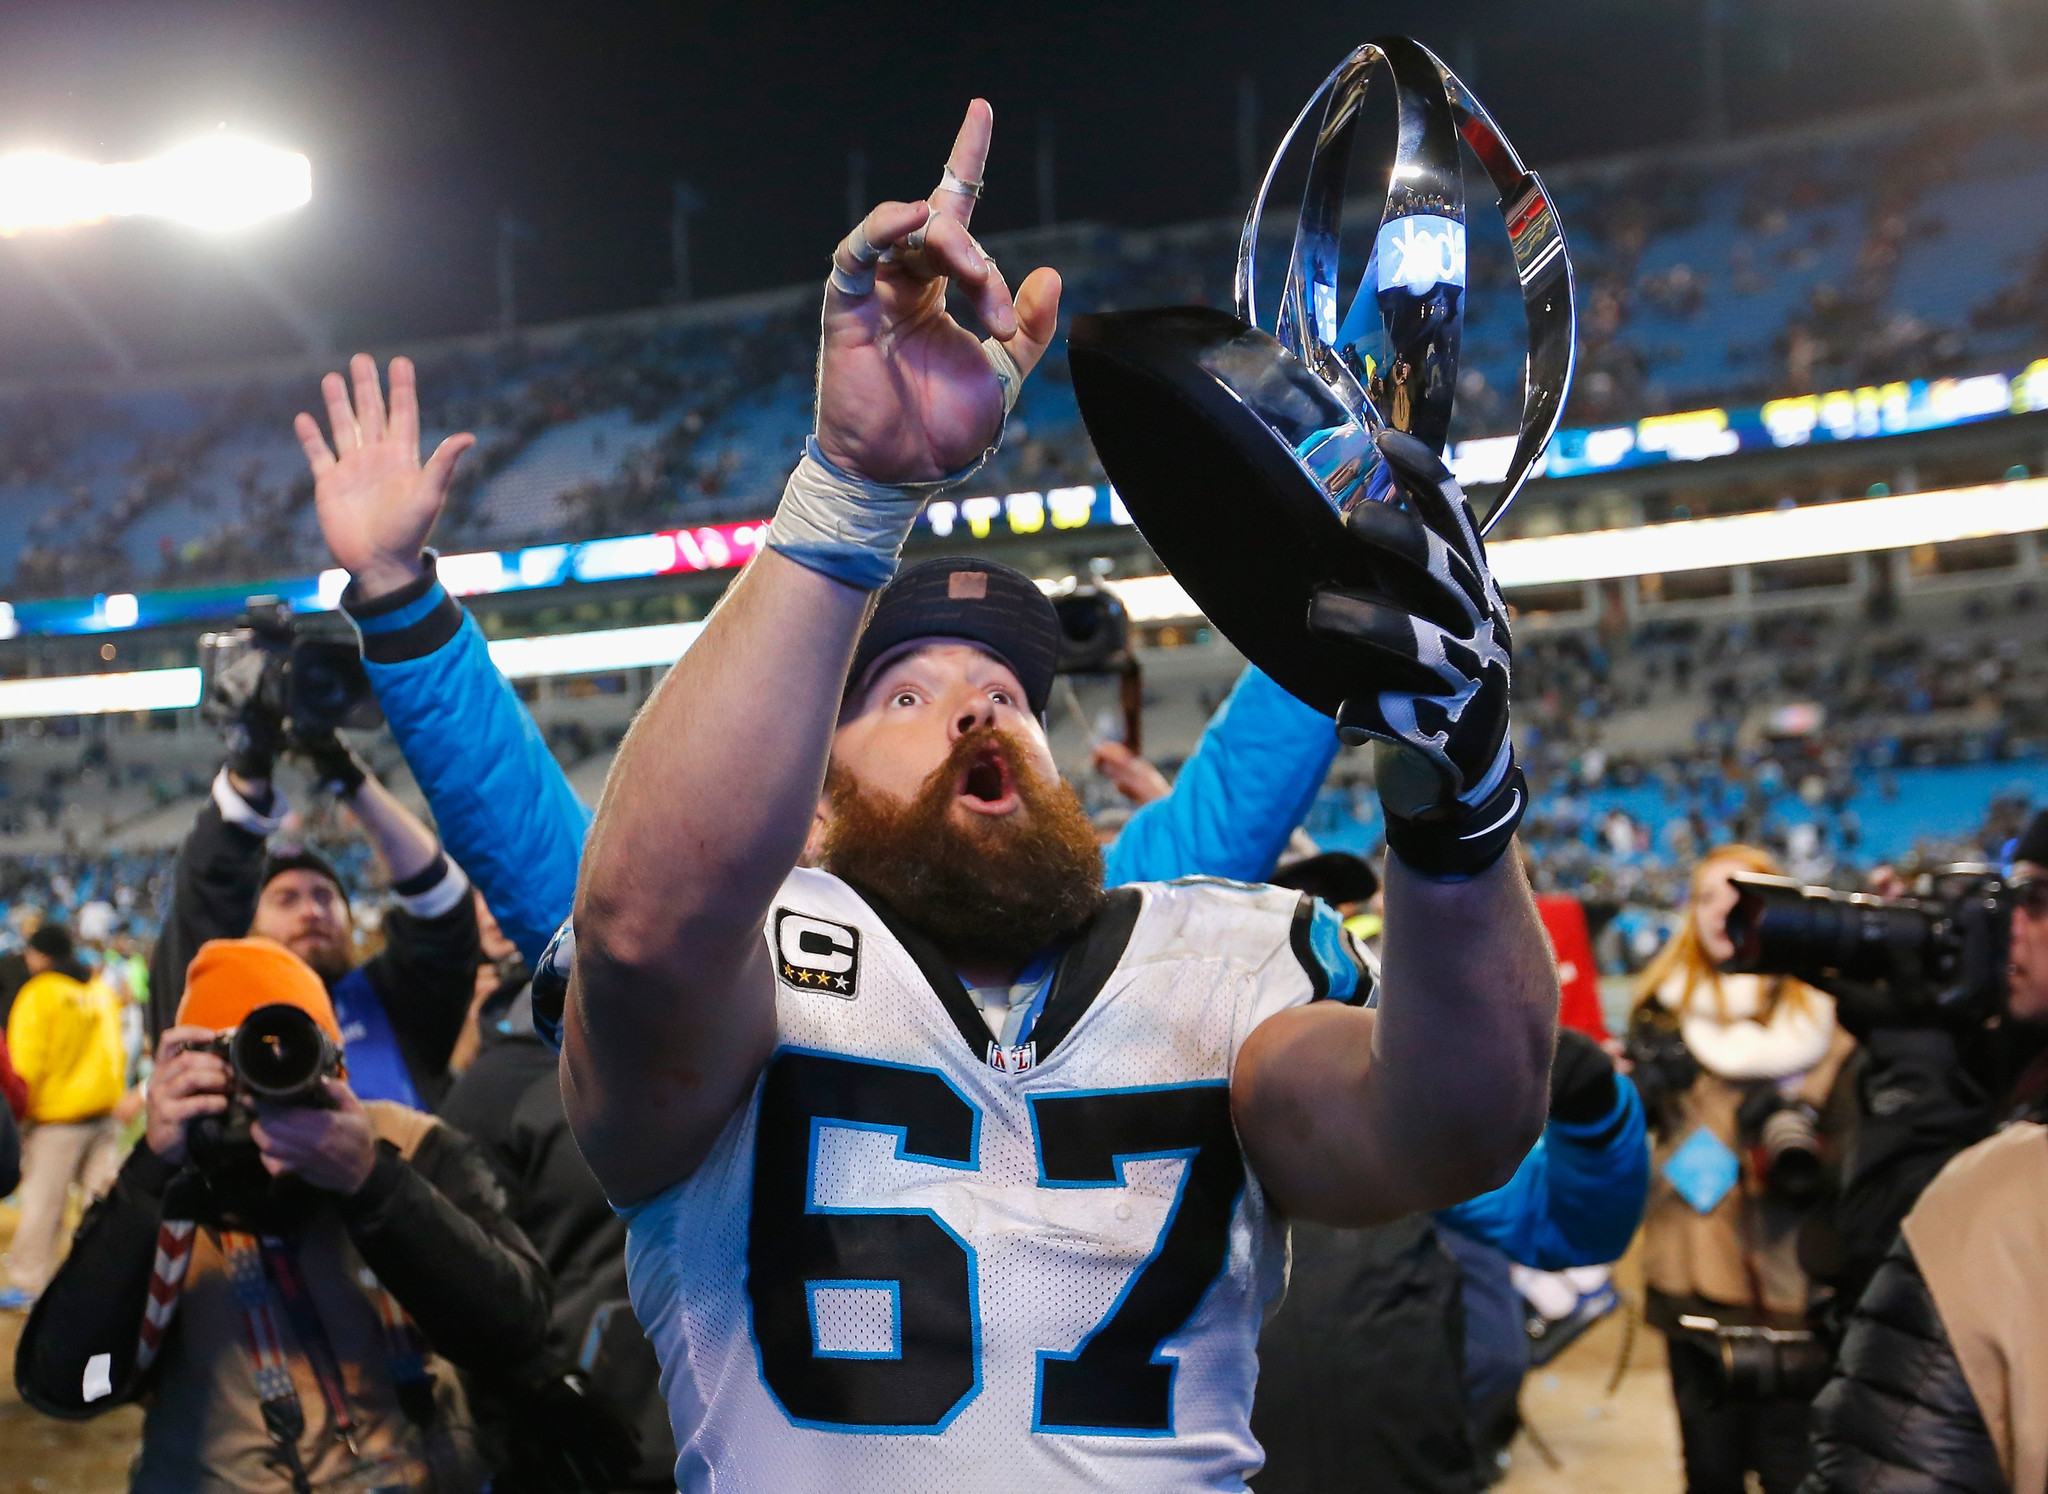 Panthers center and former Trojan Ryan Kalil is ing home to